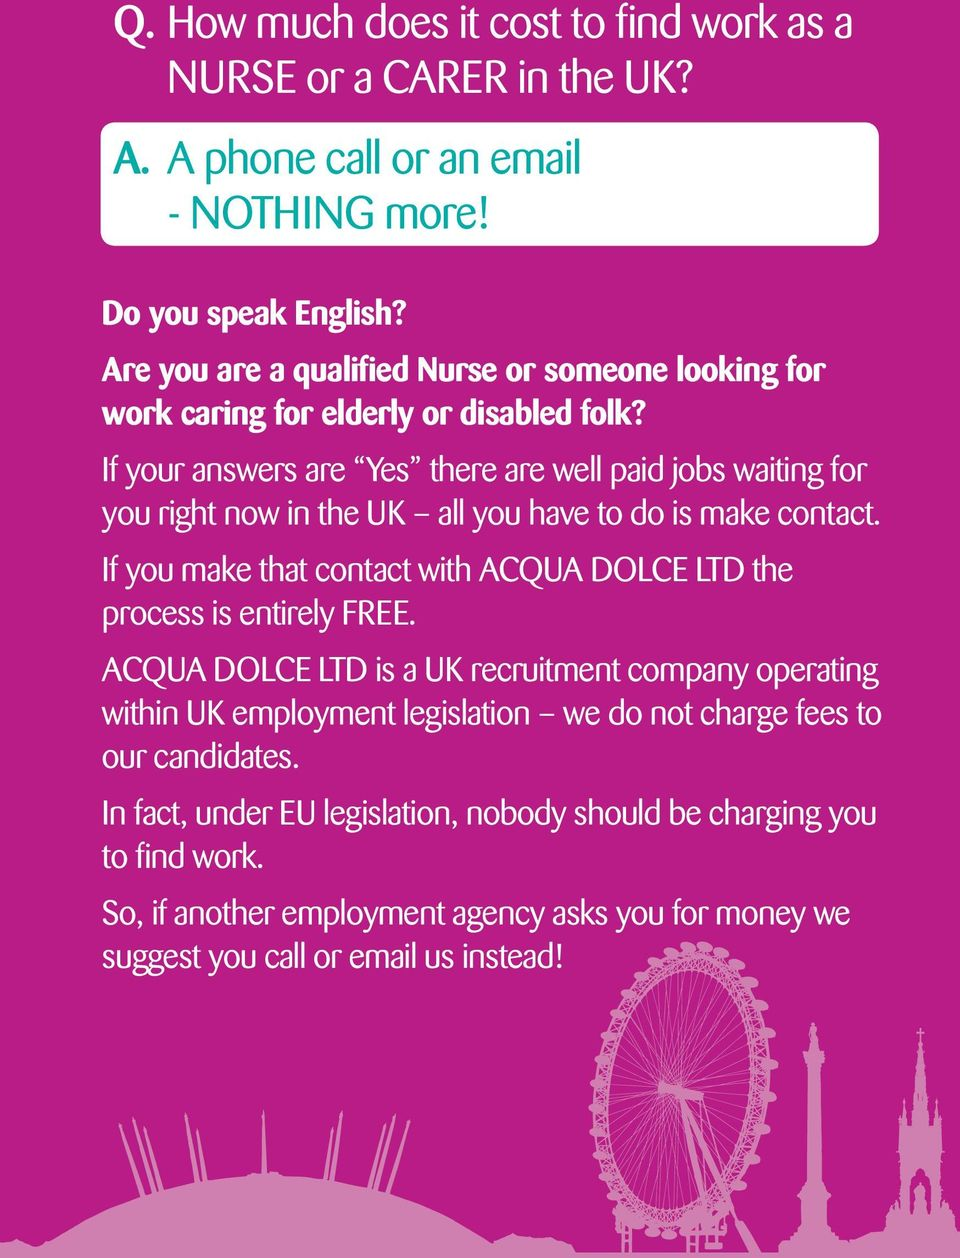 If your answers are Yes there are well paid jobs waiting for you right now in the UK all you have to do is make contact.